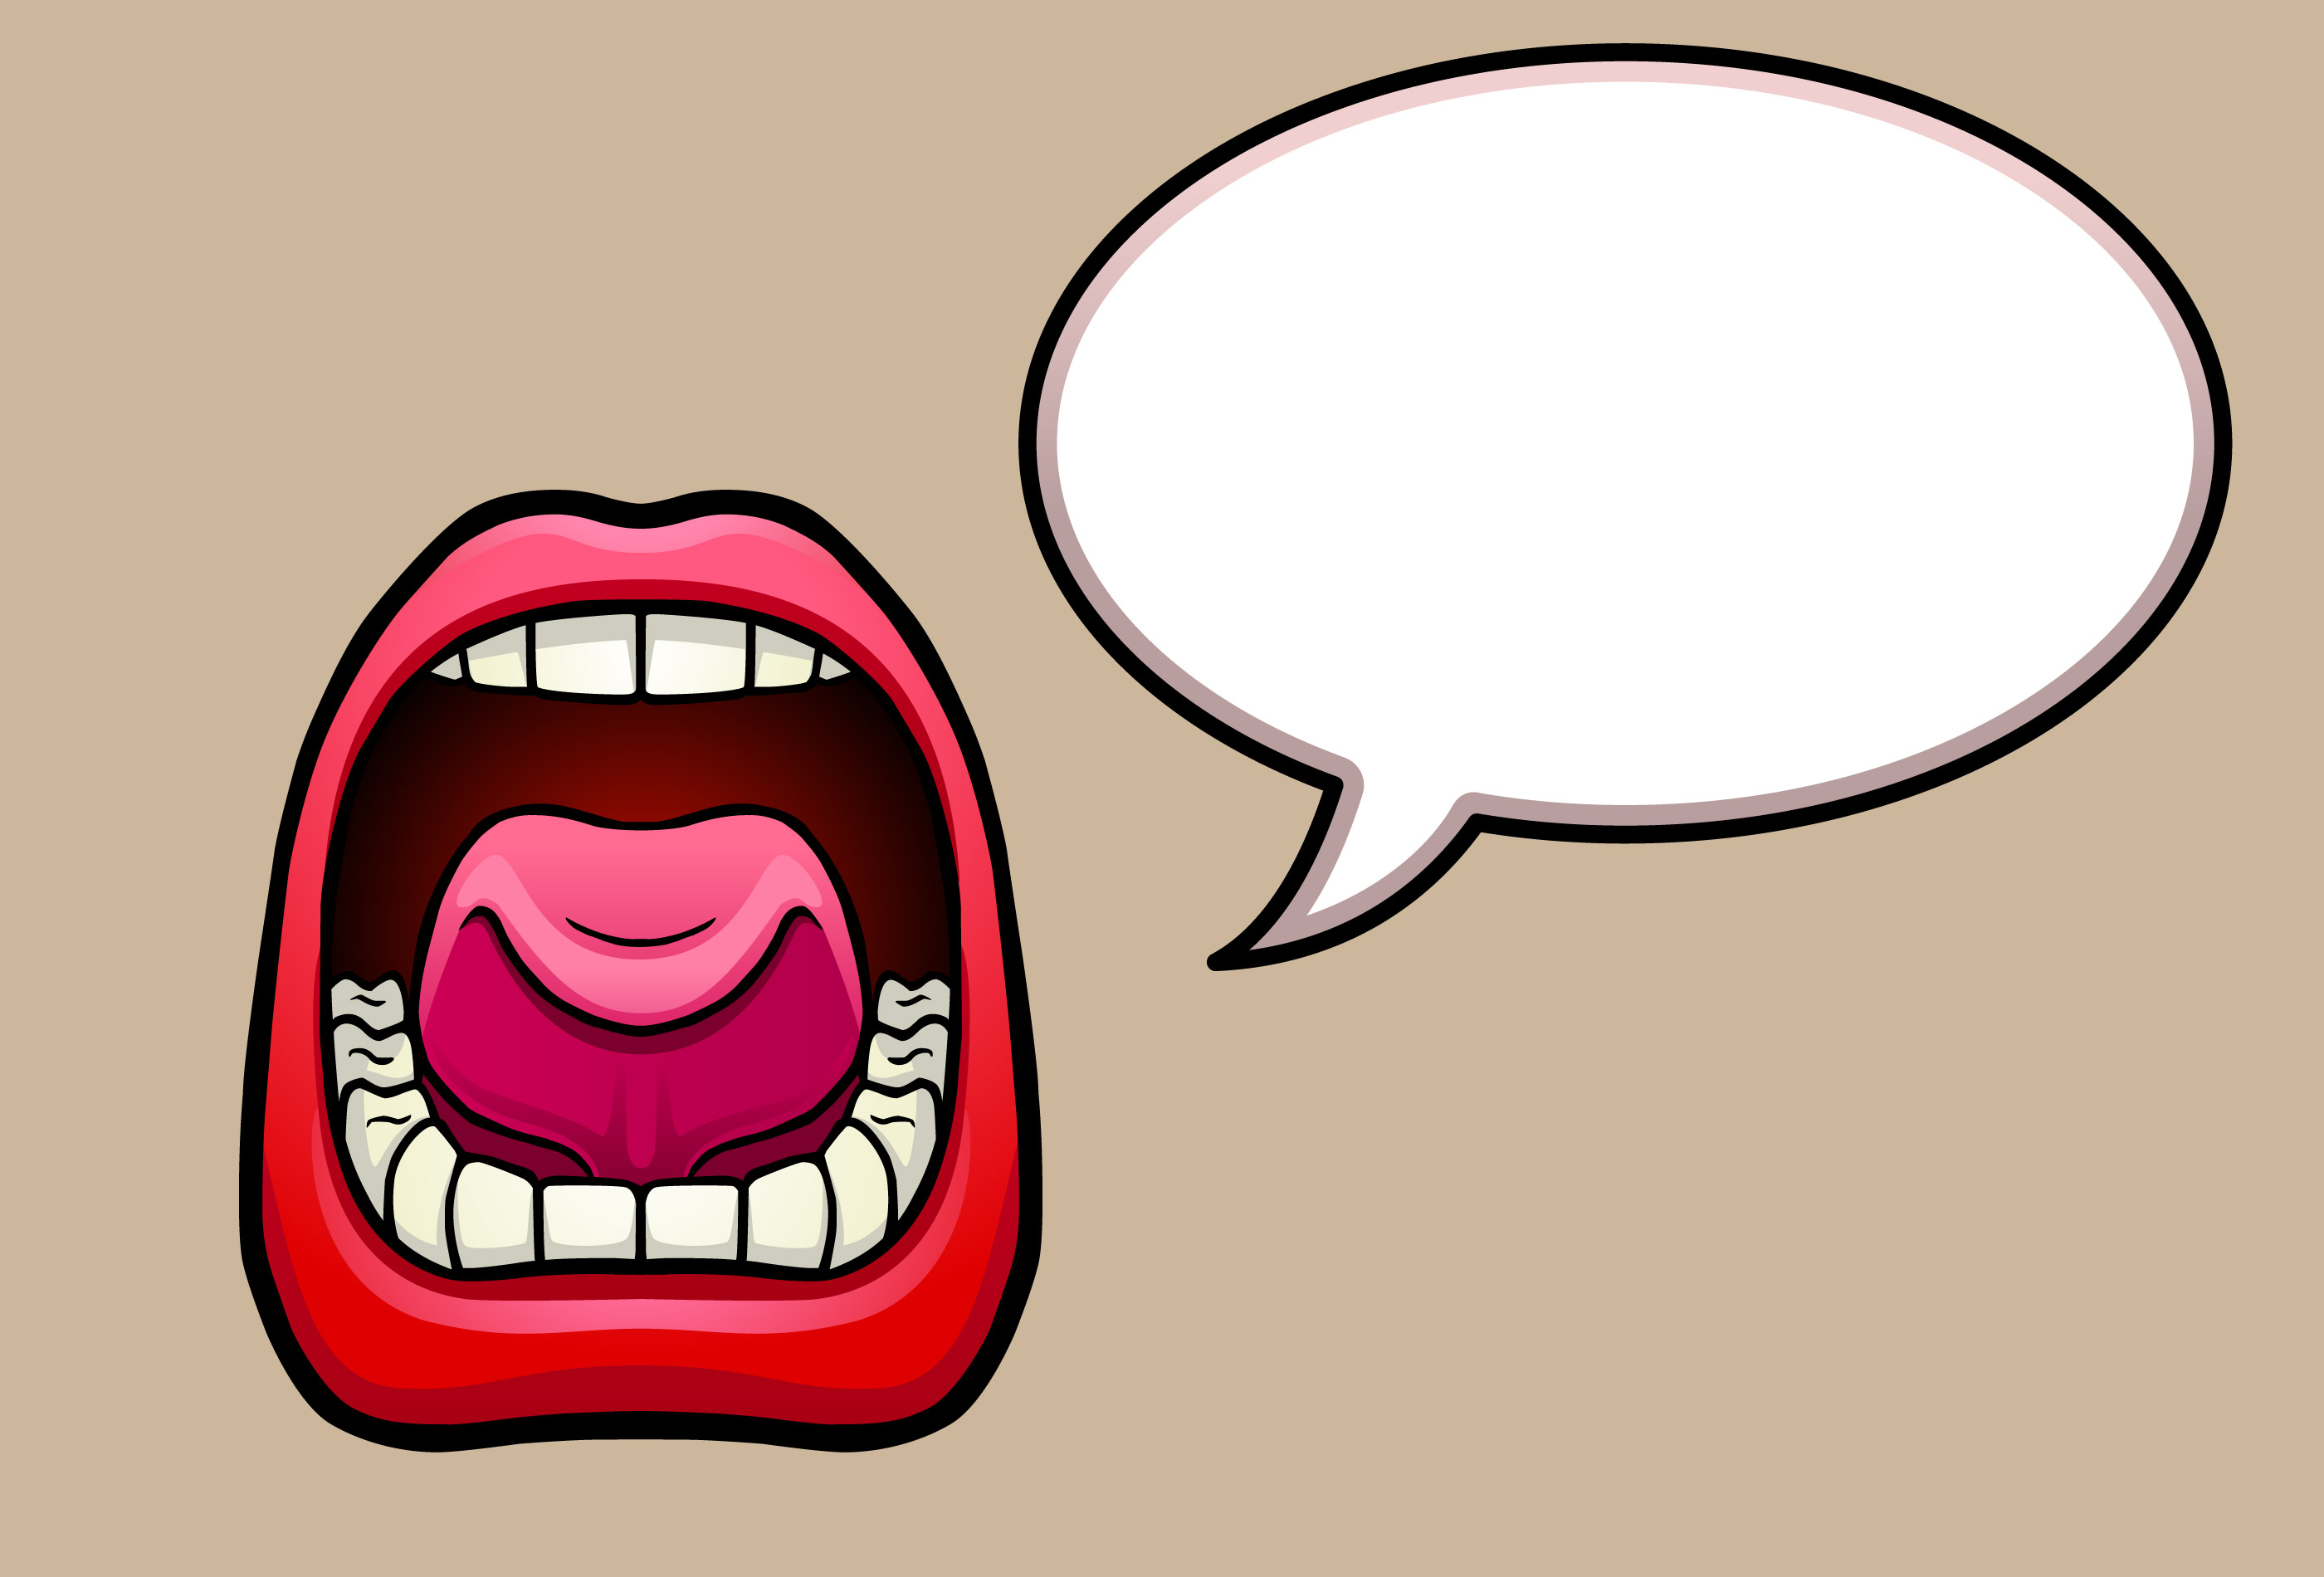 Talking Mouth Clip Art | Clipart Panda - Free Clipart Images